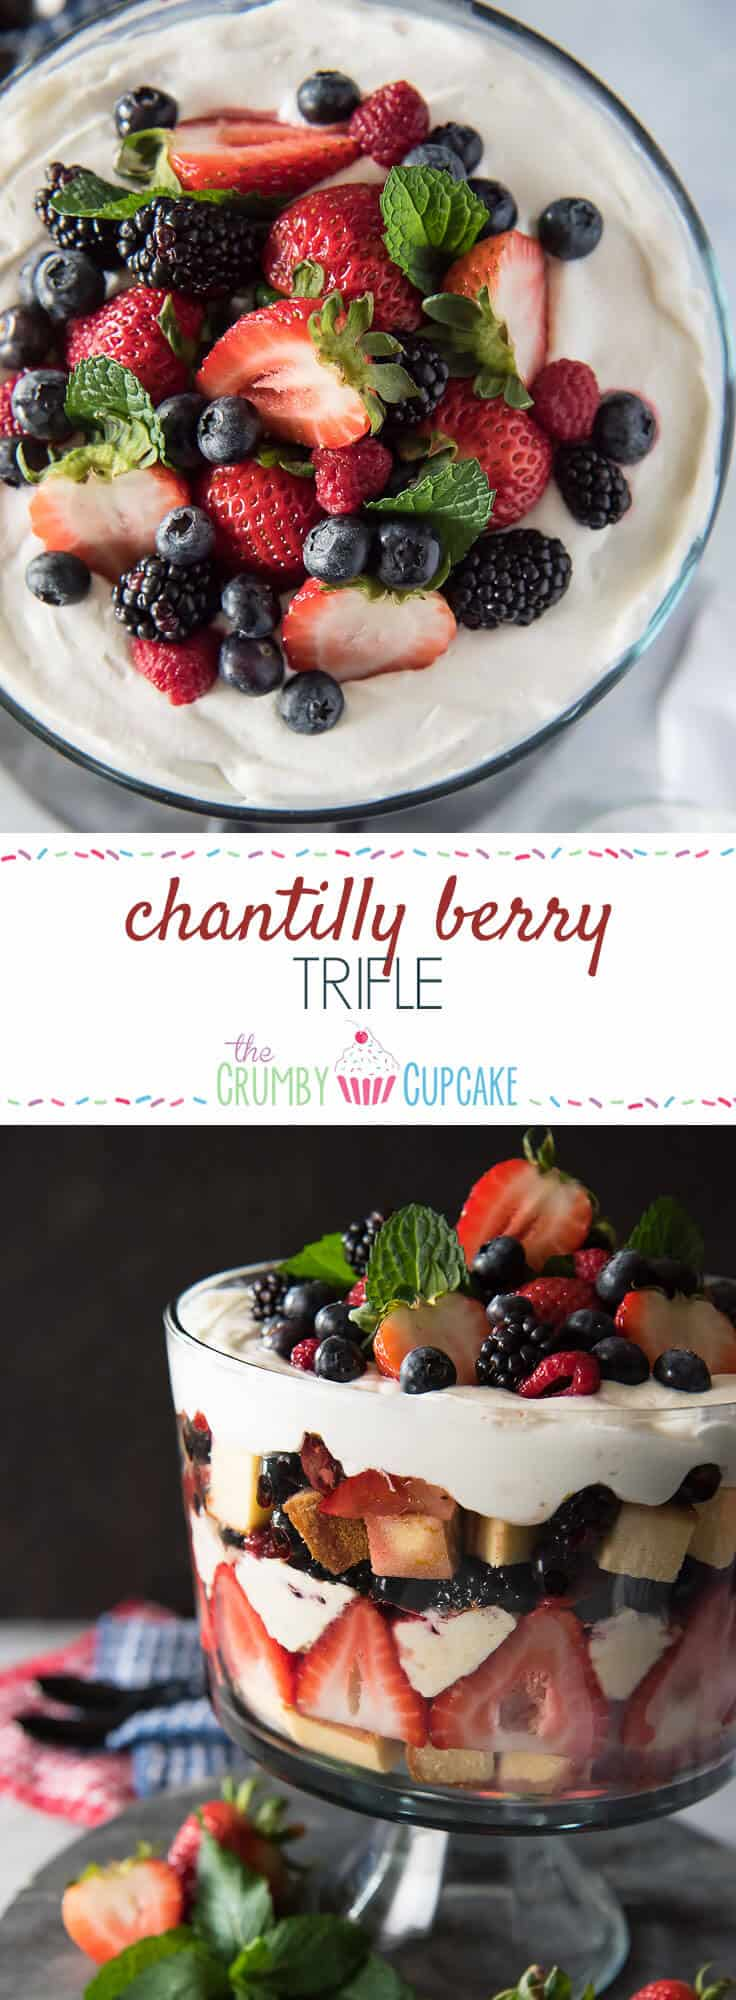 This Chantilly Berry Trifle is a real crowd pleaser! Pound cake, cheesecake filling, whipped cream, and berries marinated in raspberry liqueur make up the layers of this dessert, which is almost too pretty to eat!